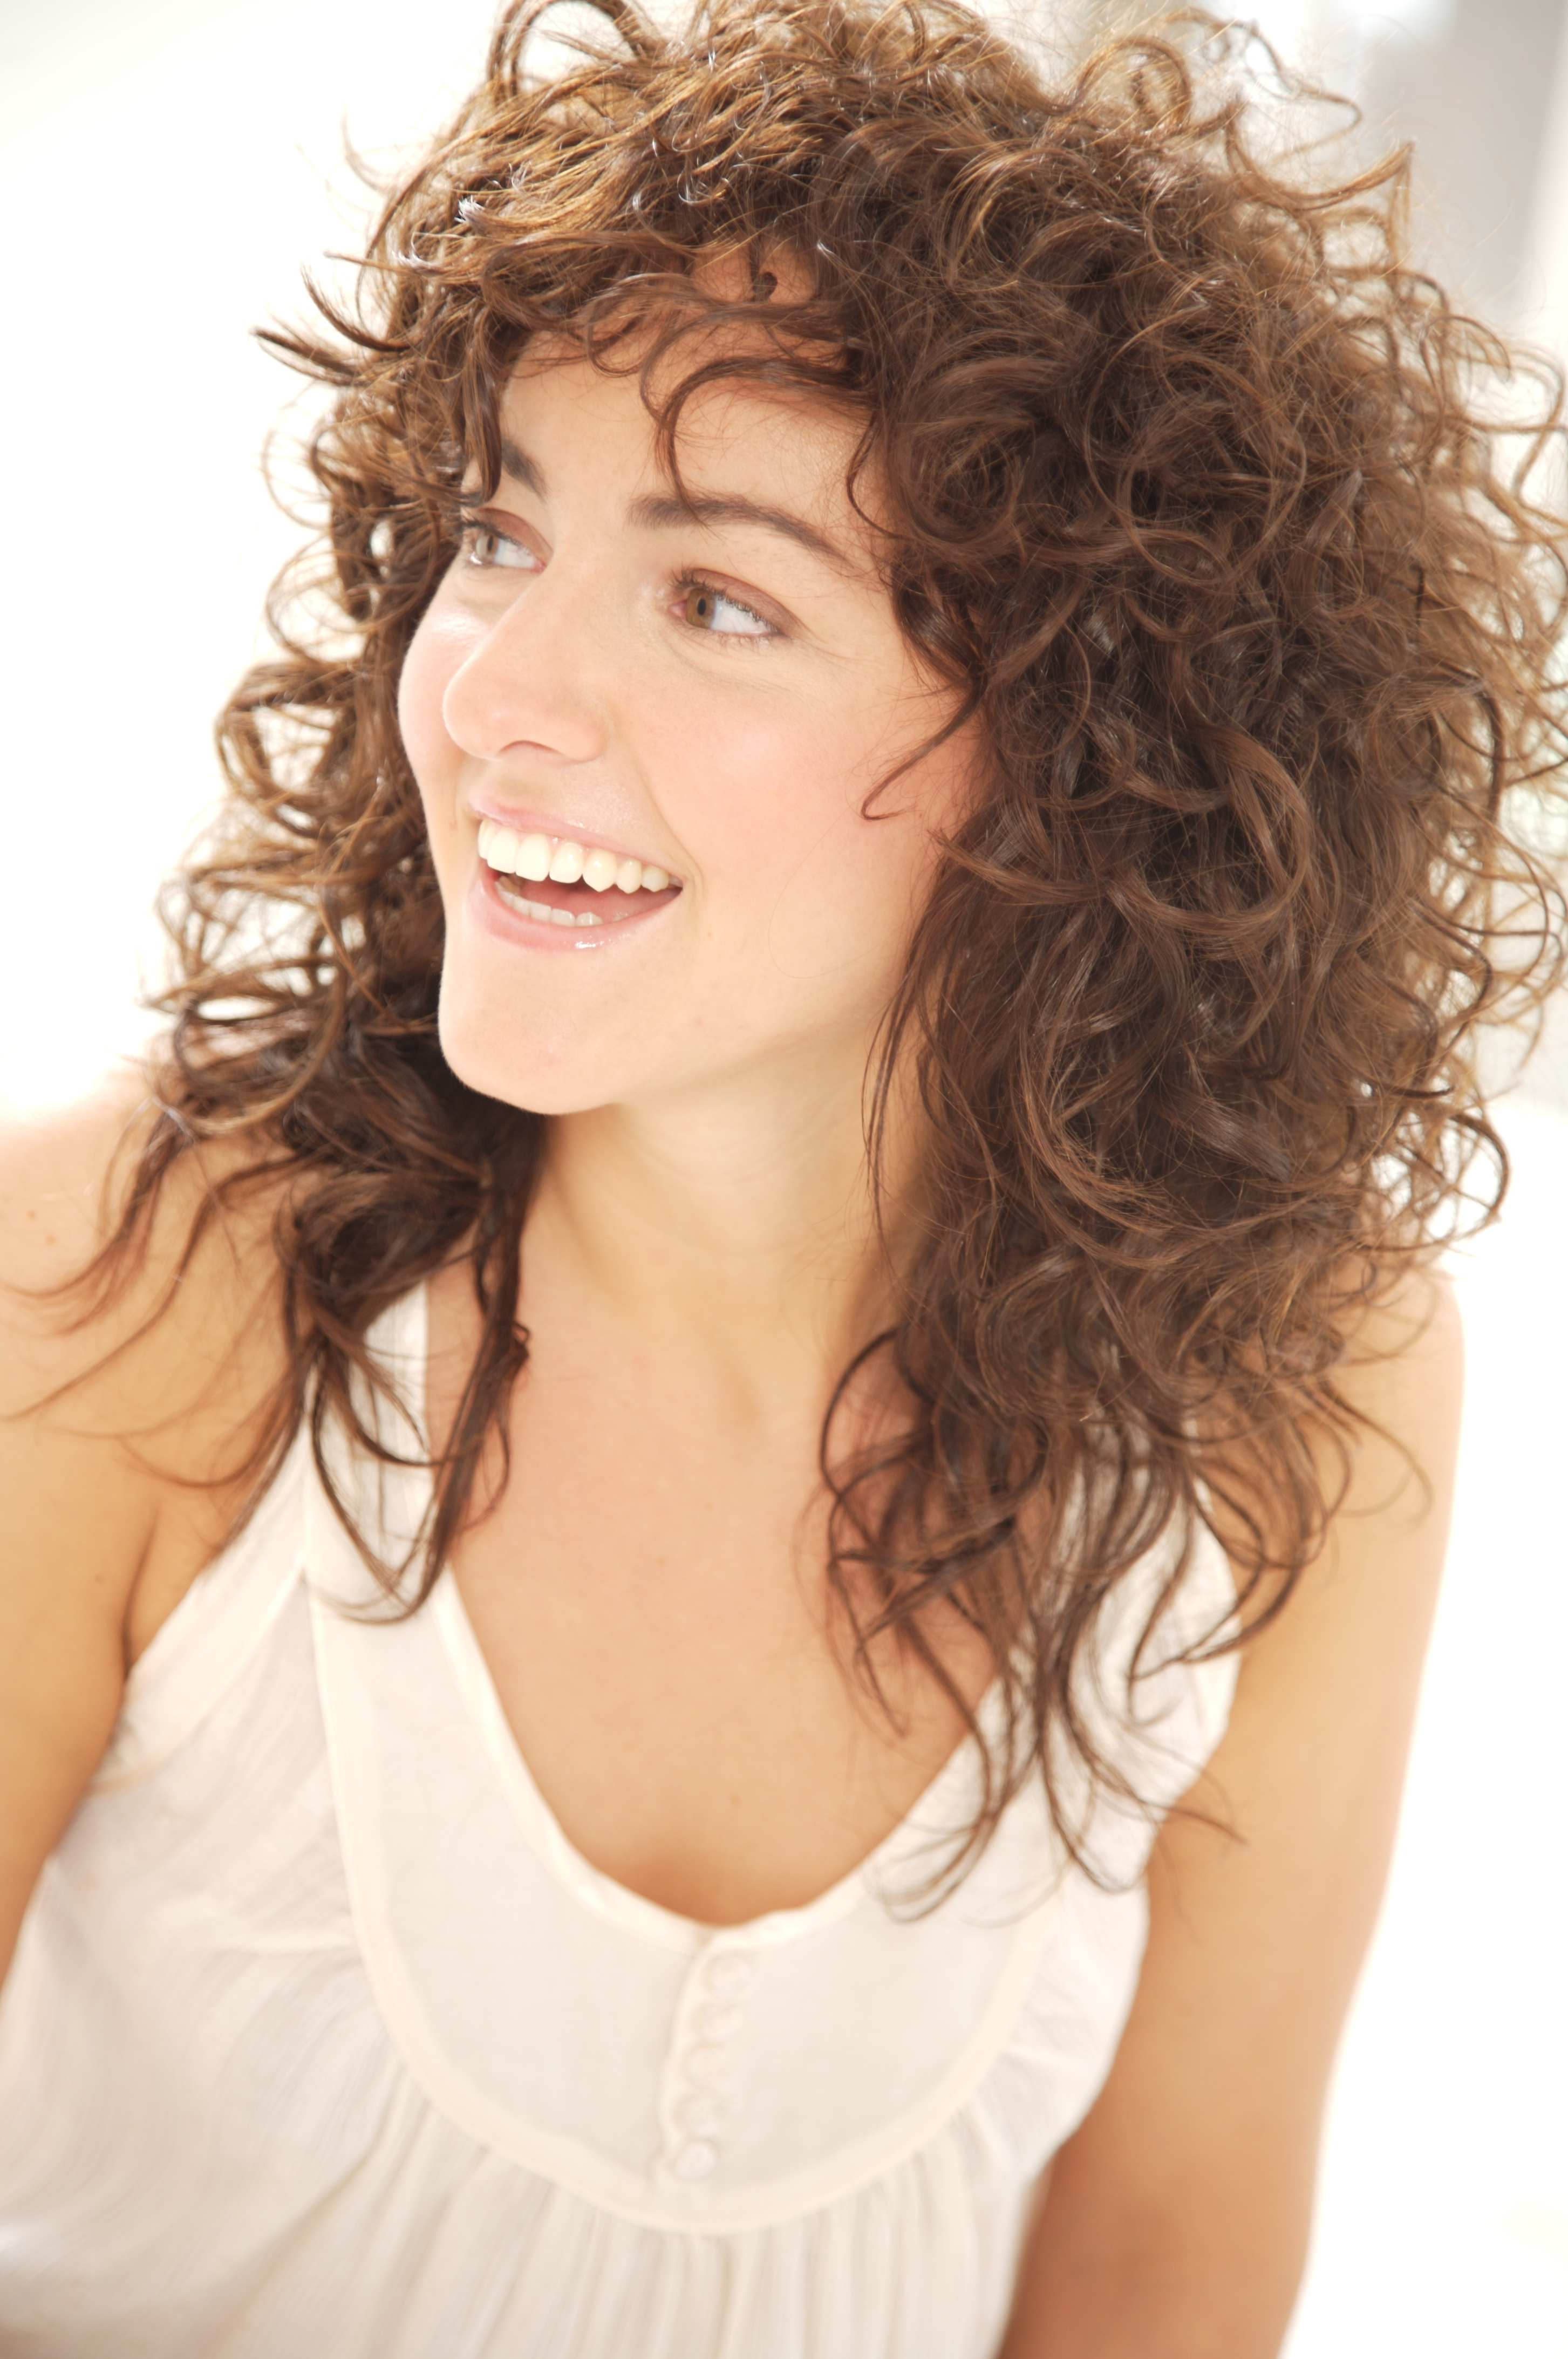 Widely Used Medium Haircuts For Naturally Curly Hair In Hair Cuts : Naturally Curly Haircuts Short For Round Faces And Hair (View 20 of 20)